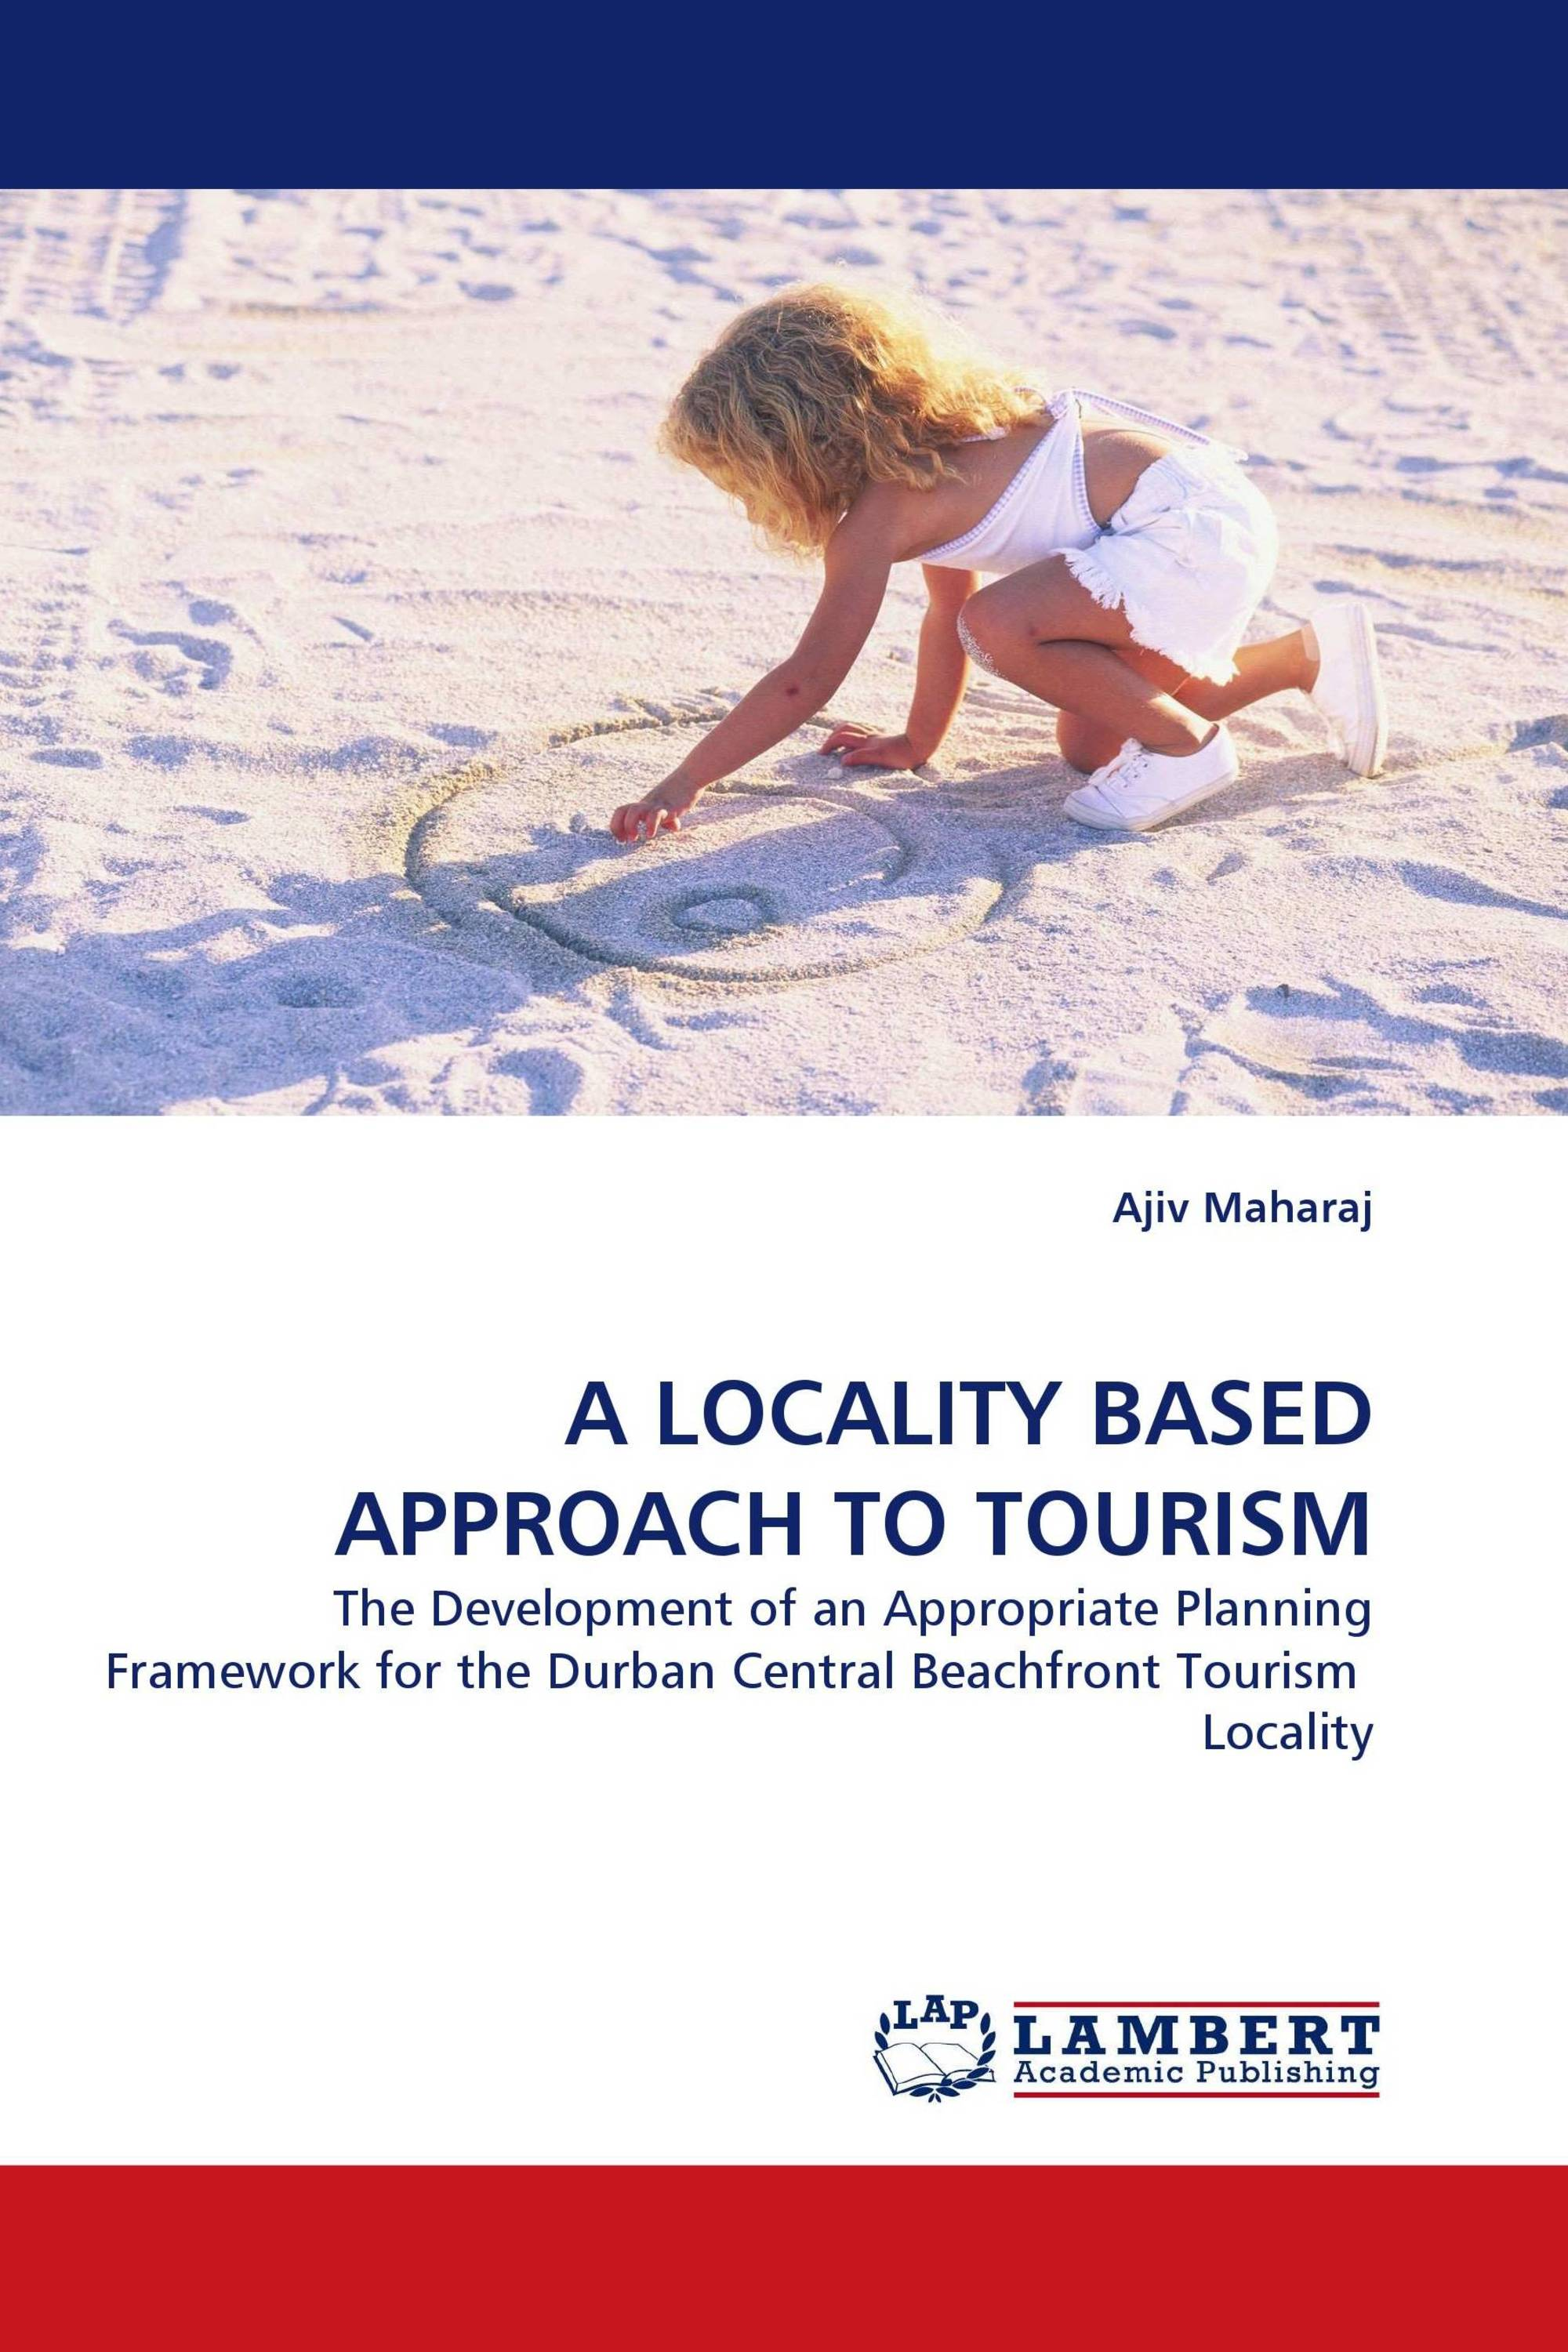 A LOCALITY BASED APPROACH TO TOURISM